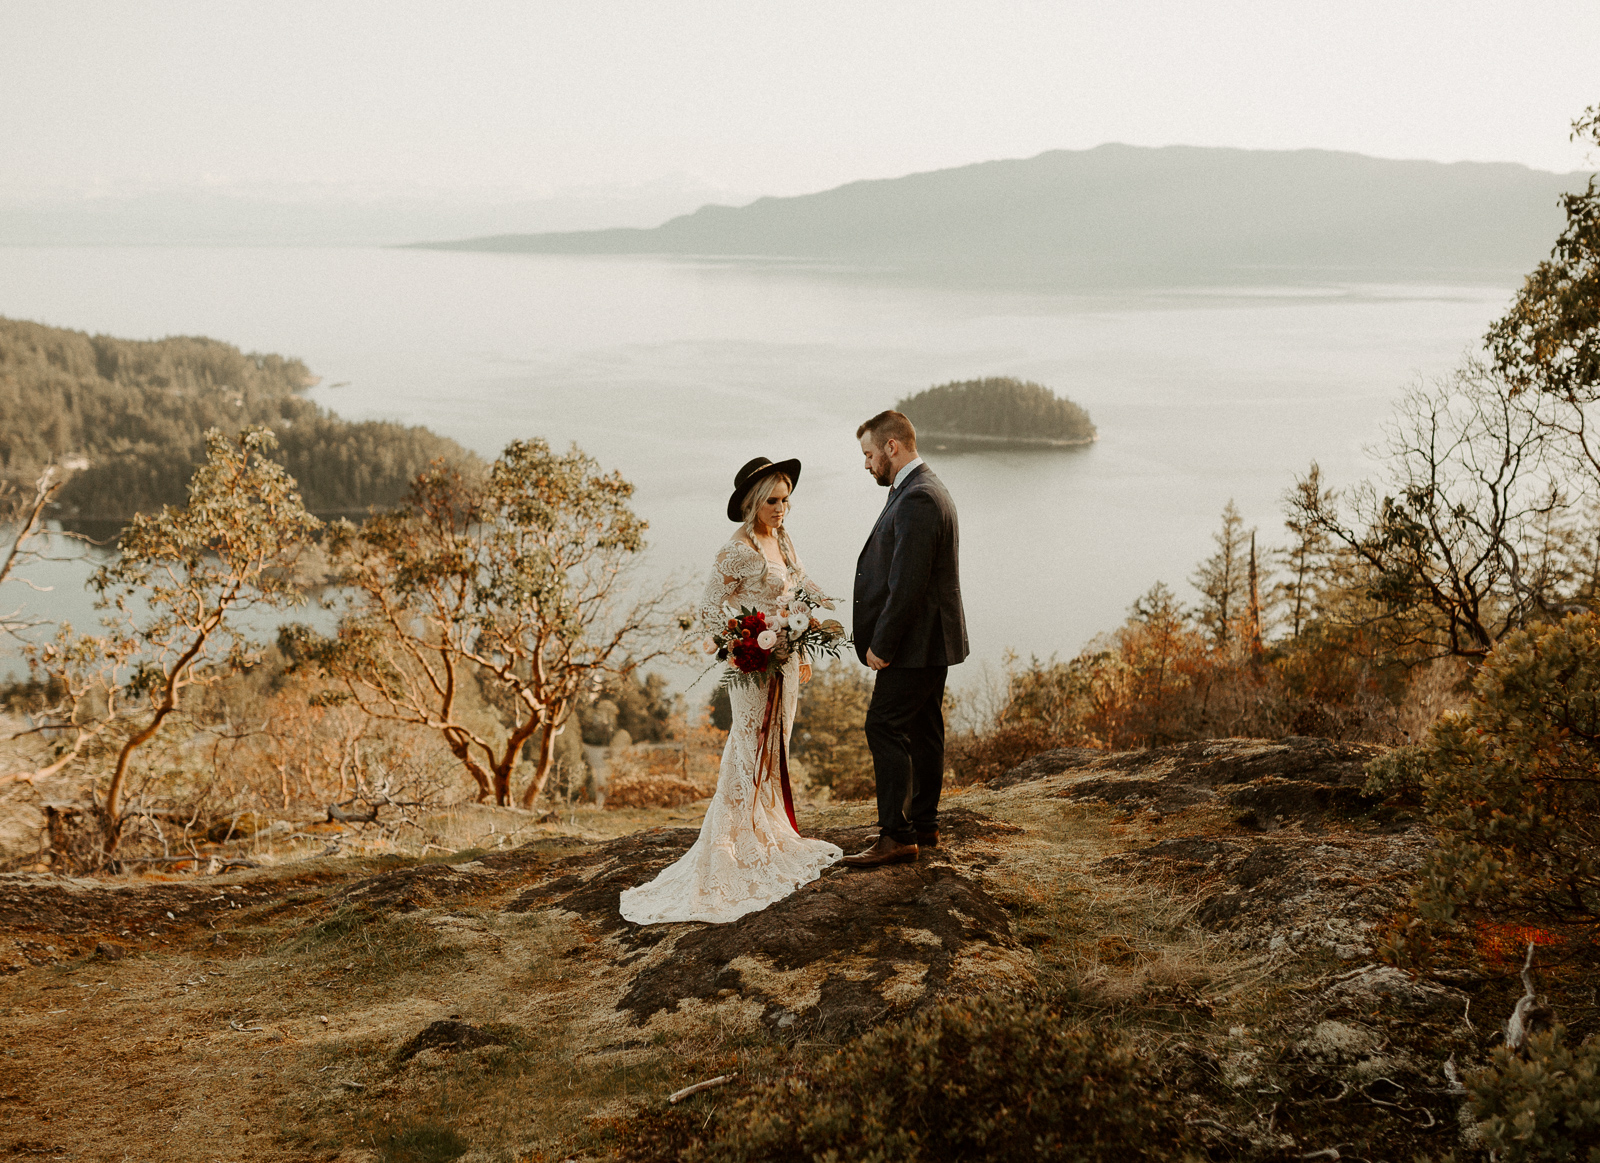 Luke Lambertson Photo_BritishColumbia_Canada_AdventurousCouple_Elopement_IMG-7936.jpg